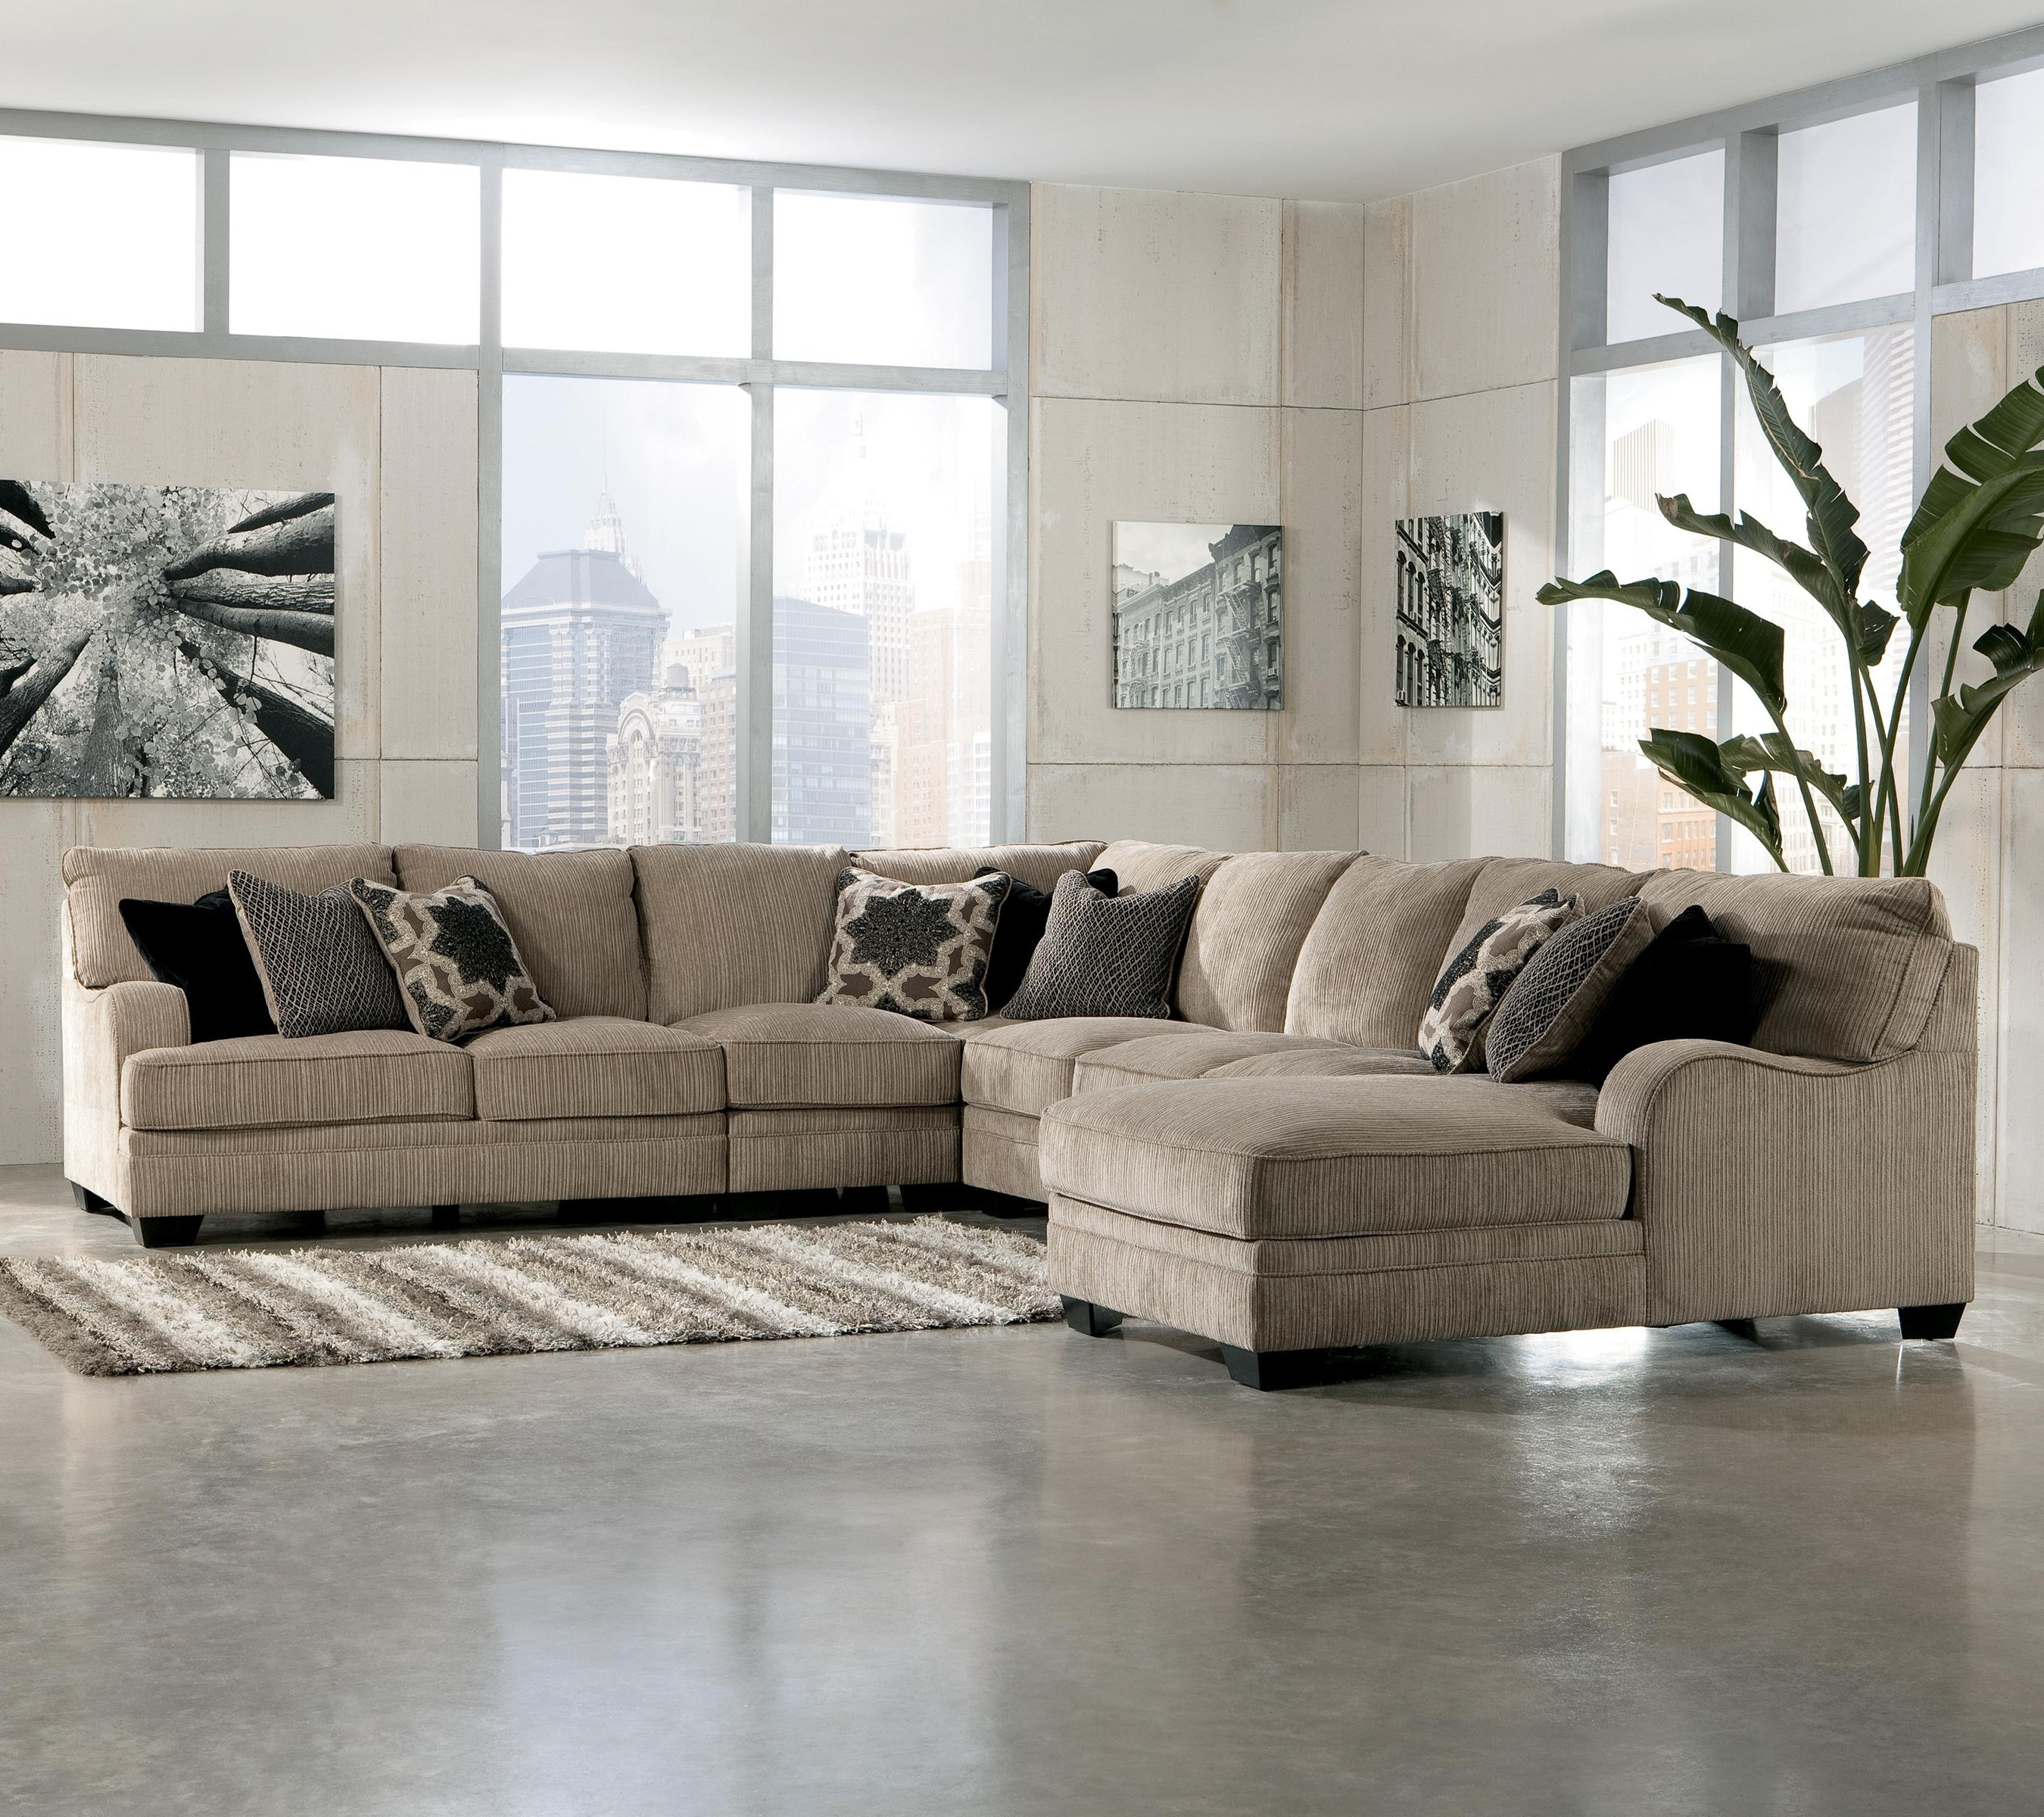 Sectional Sofas At Buffalo Ny With Most Recently Released Furniture: Ashley Furniture Charlotte Nc (View 7 of 15)